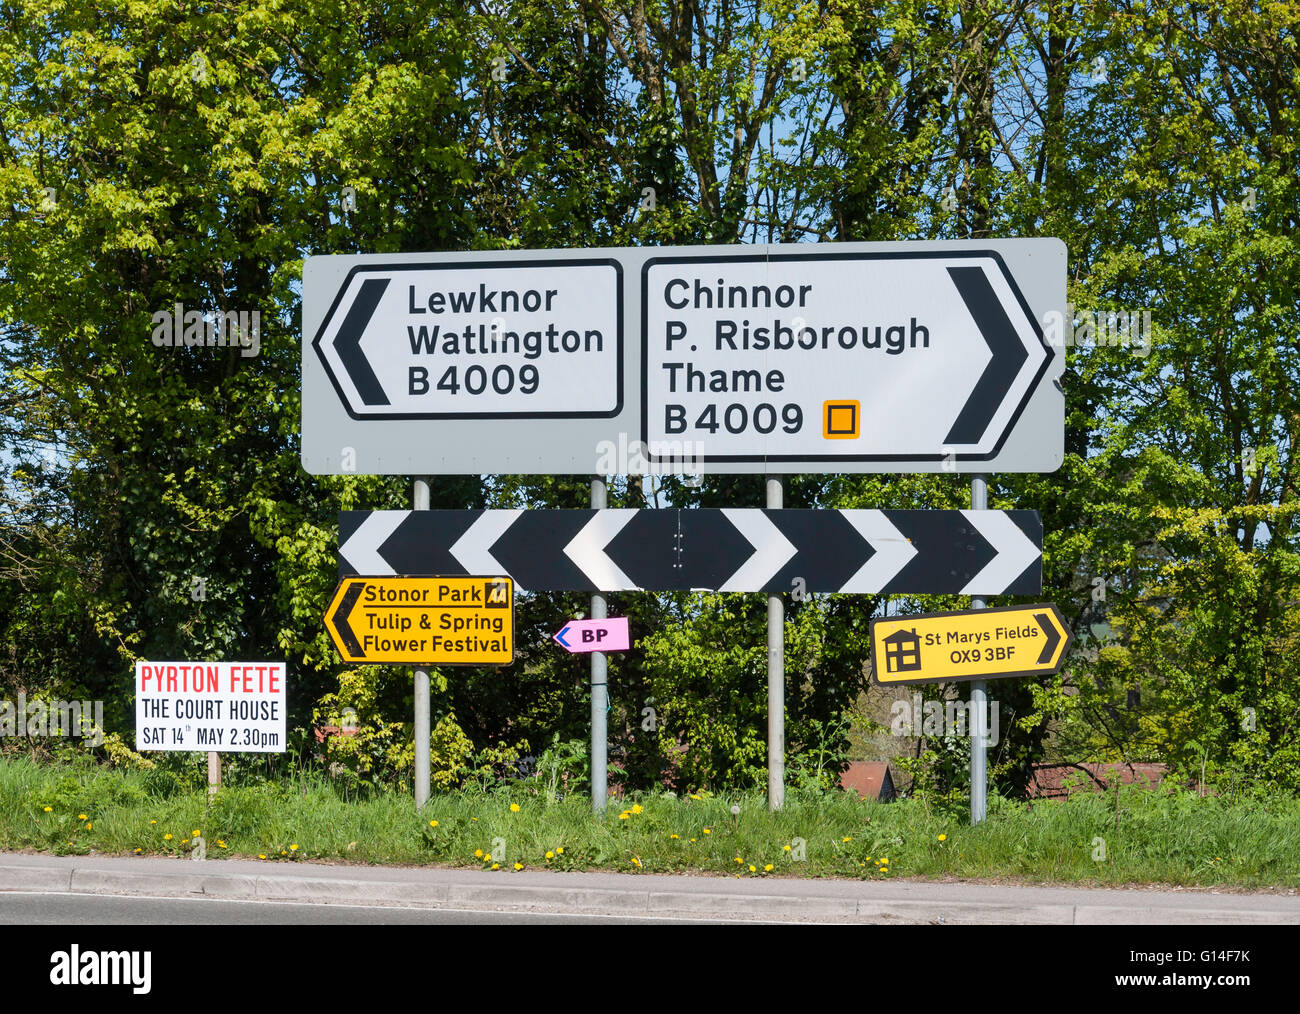 Road signs on B4009 road, at Junction 6 of M40 Motorway Oxfordshire, England, United Kingdom - Stock Image